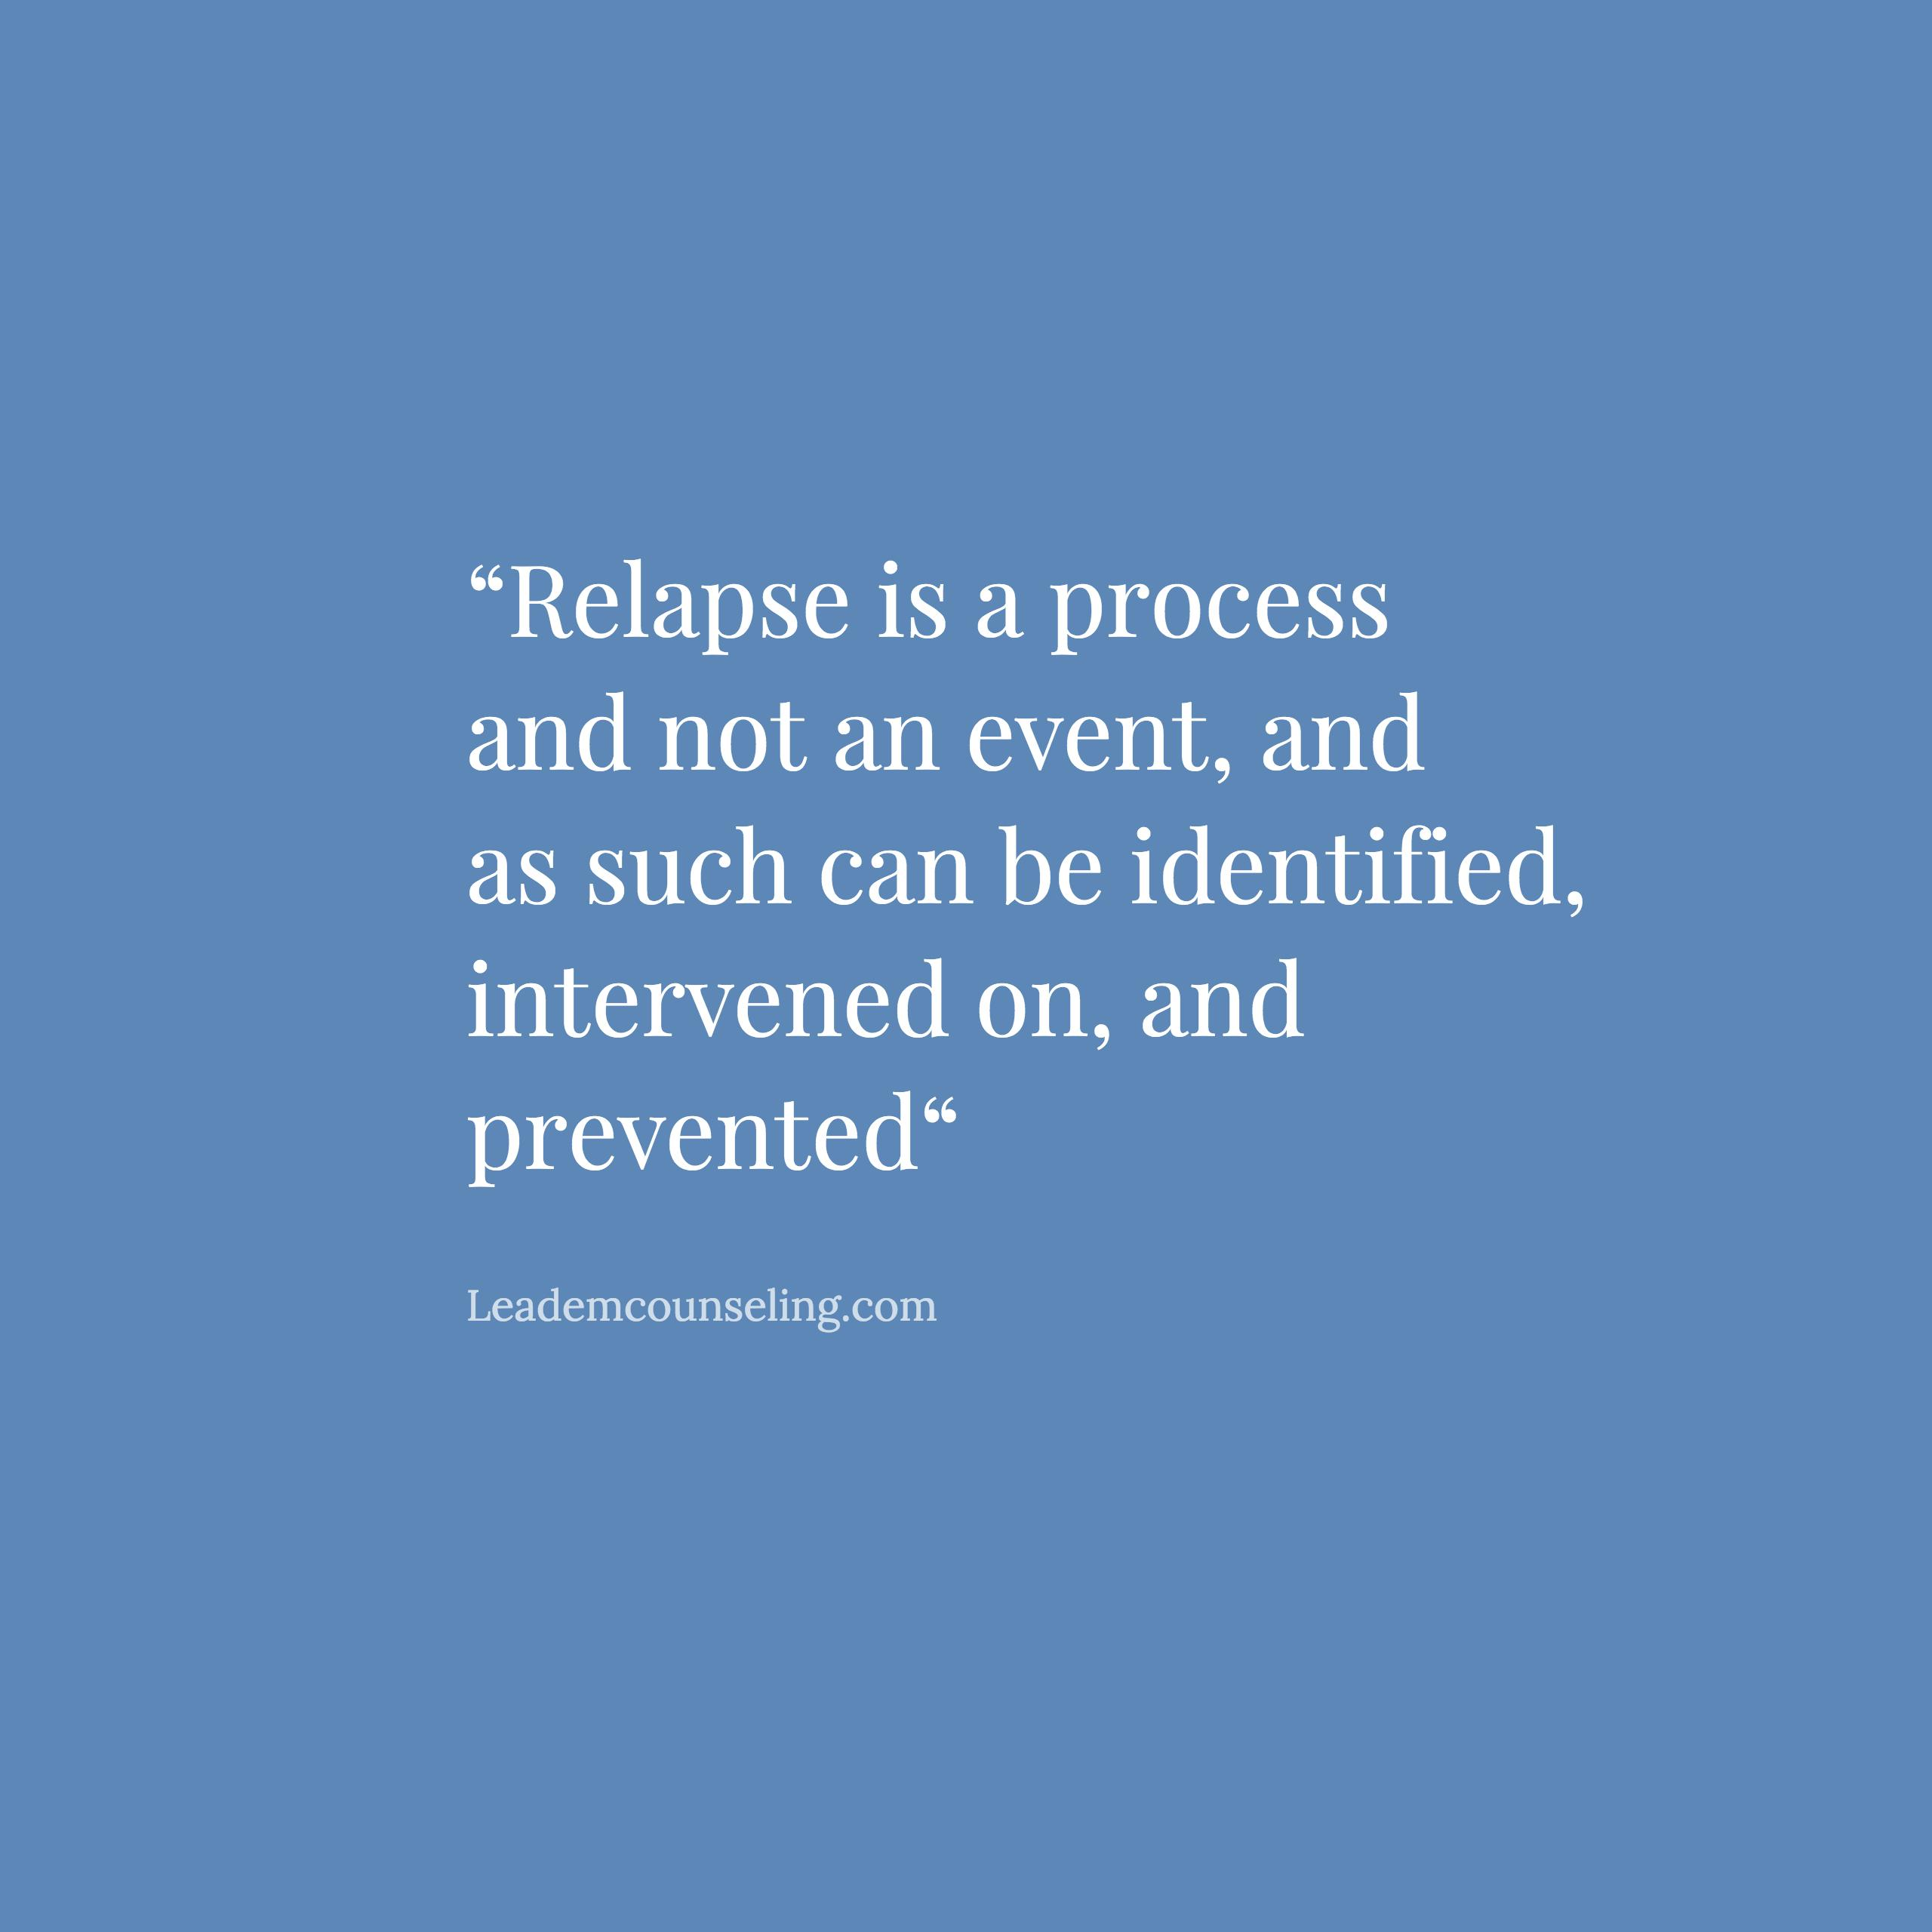 Relapse is a process and not an event, and as such can be identified, intervened on, and prevented